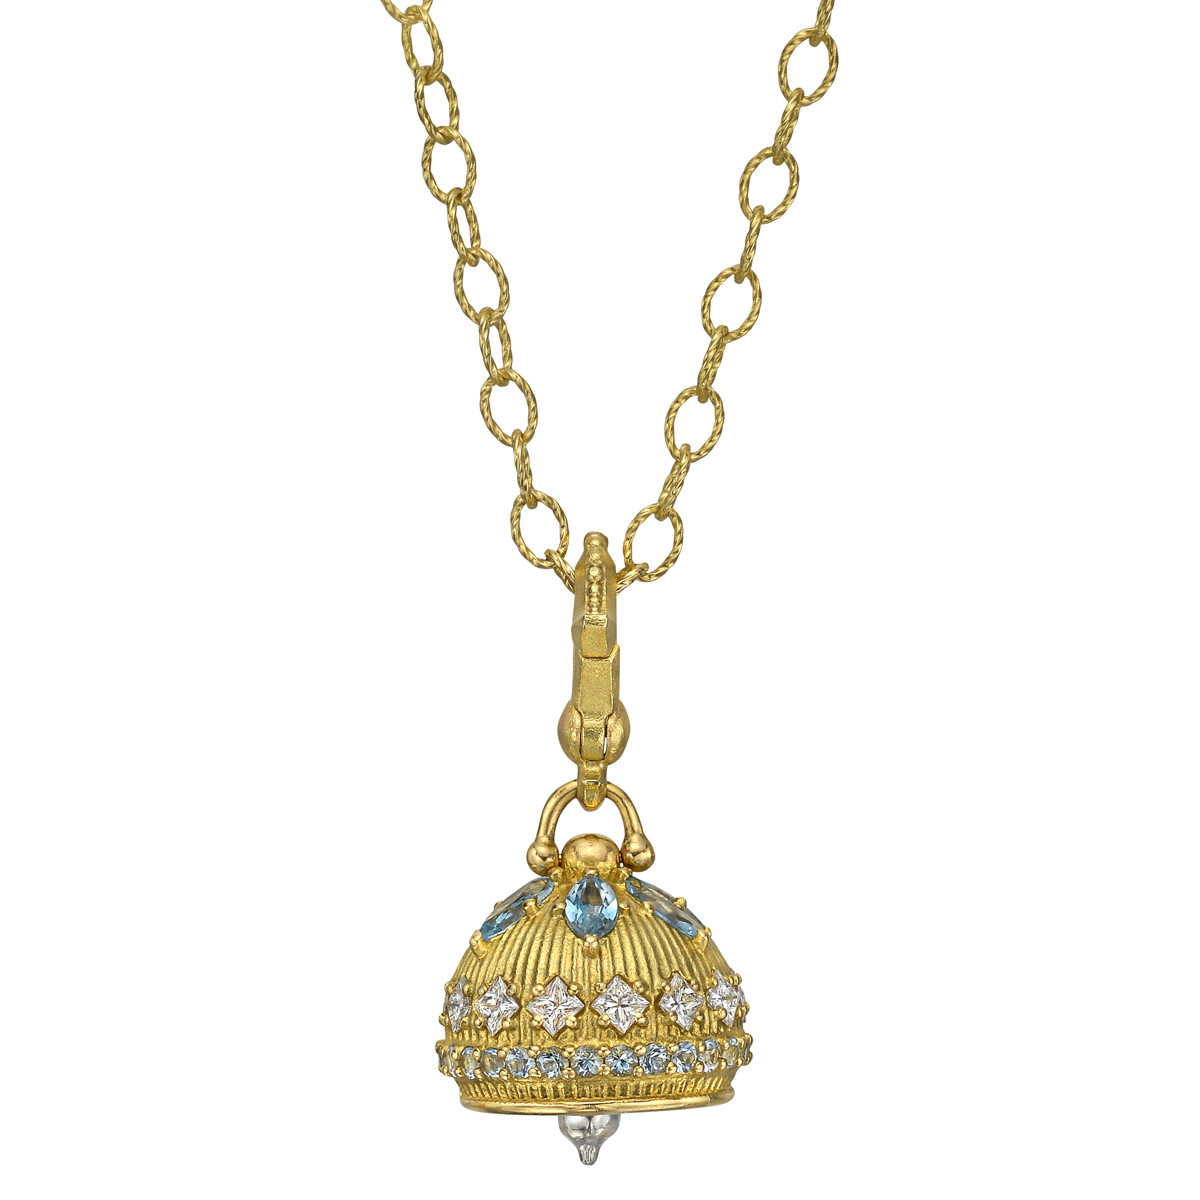 18k Yellow Gold, Aquamarine & Diamond Meditation Bell